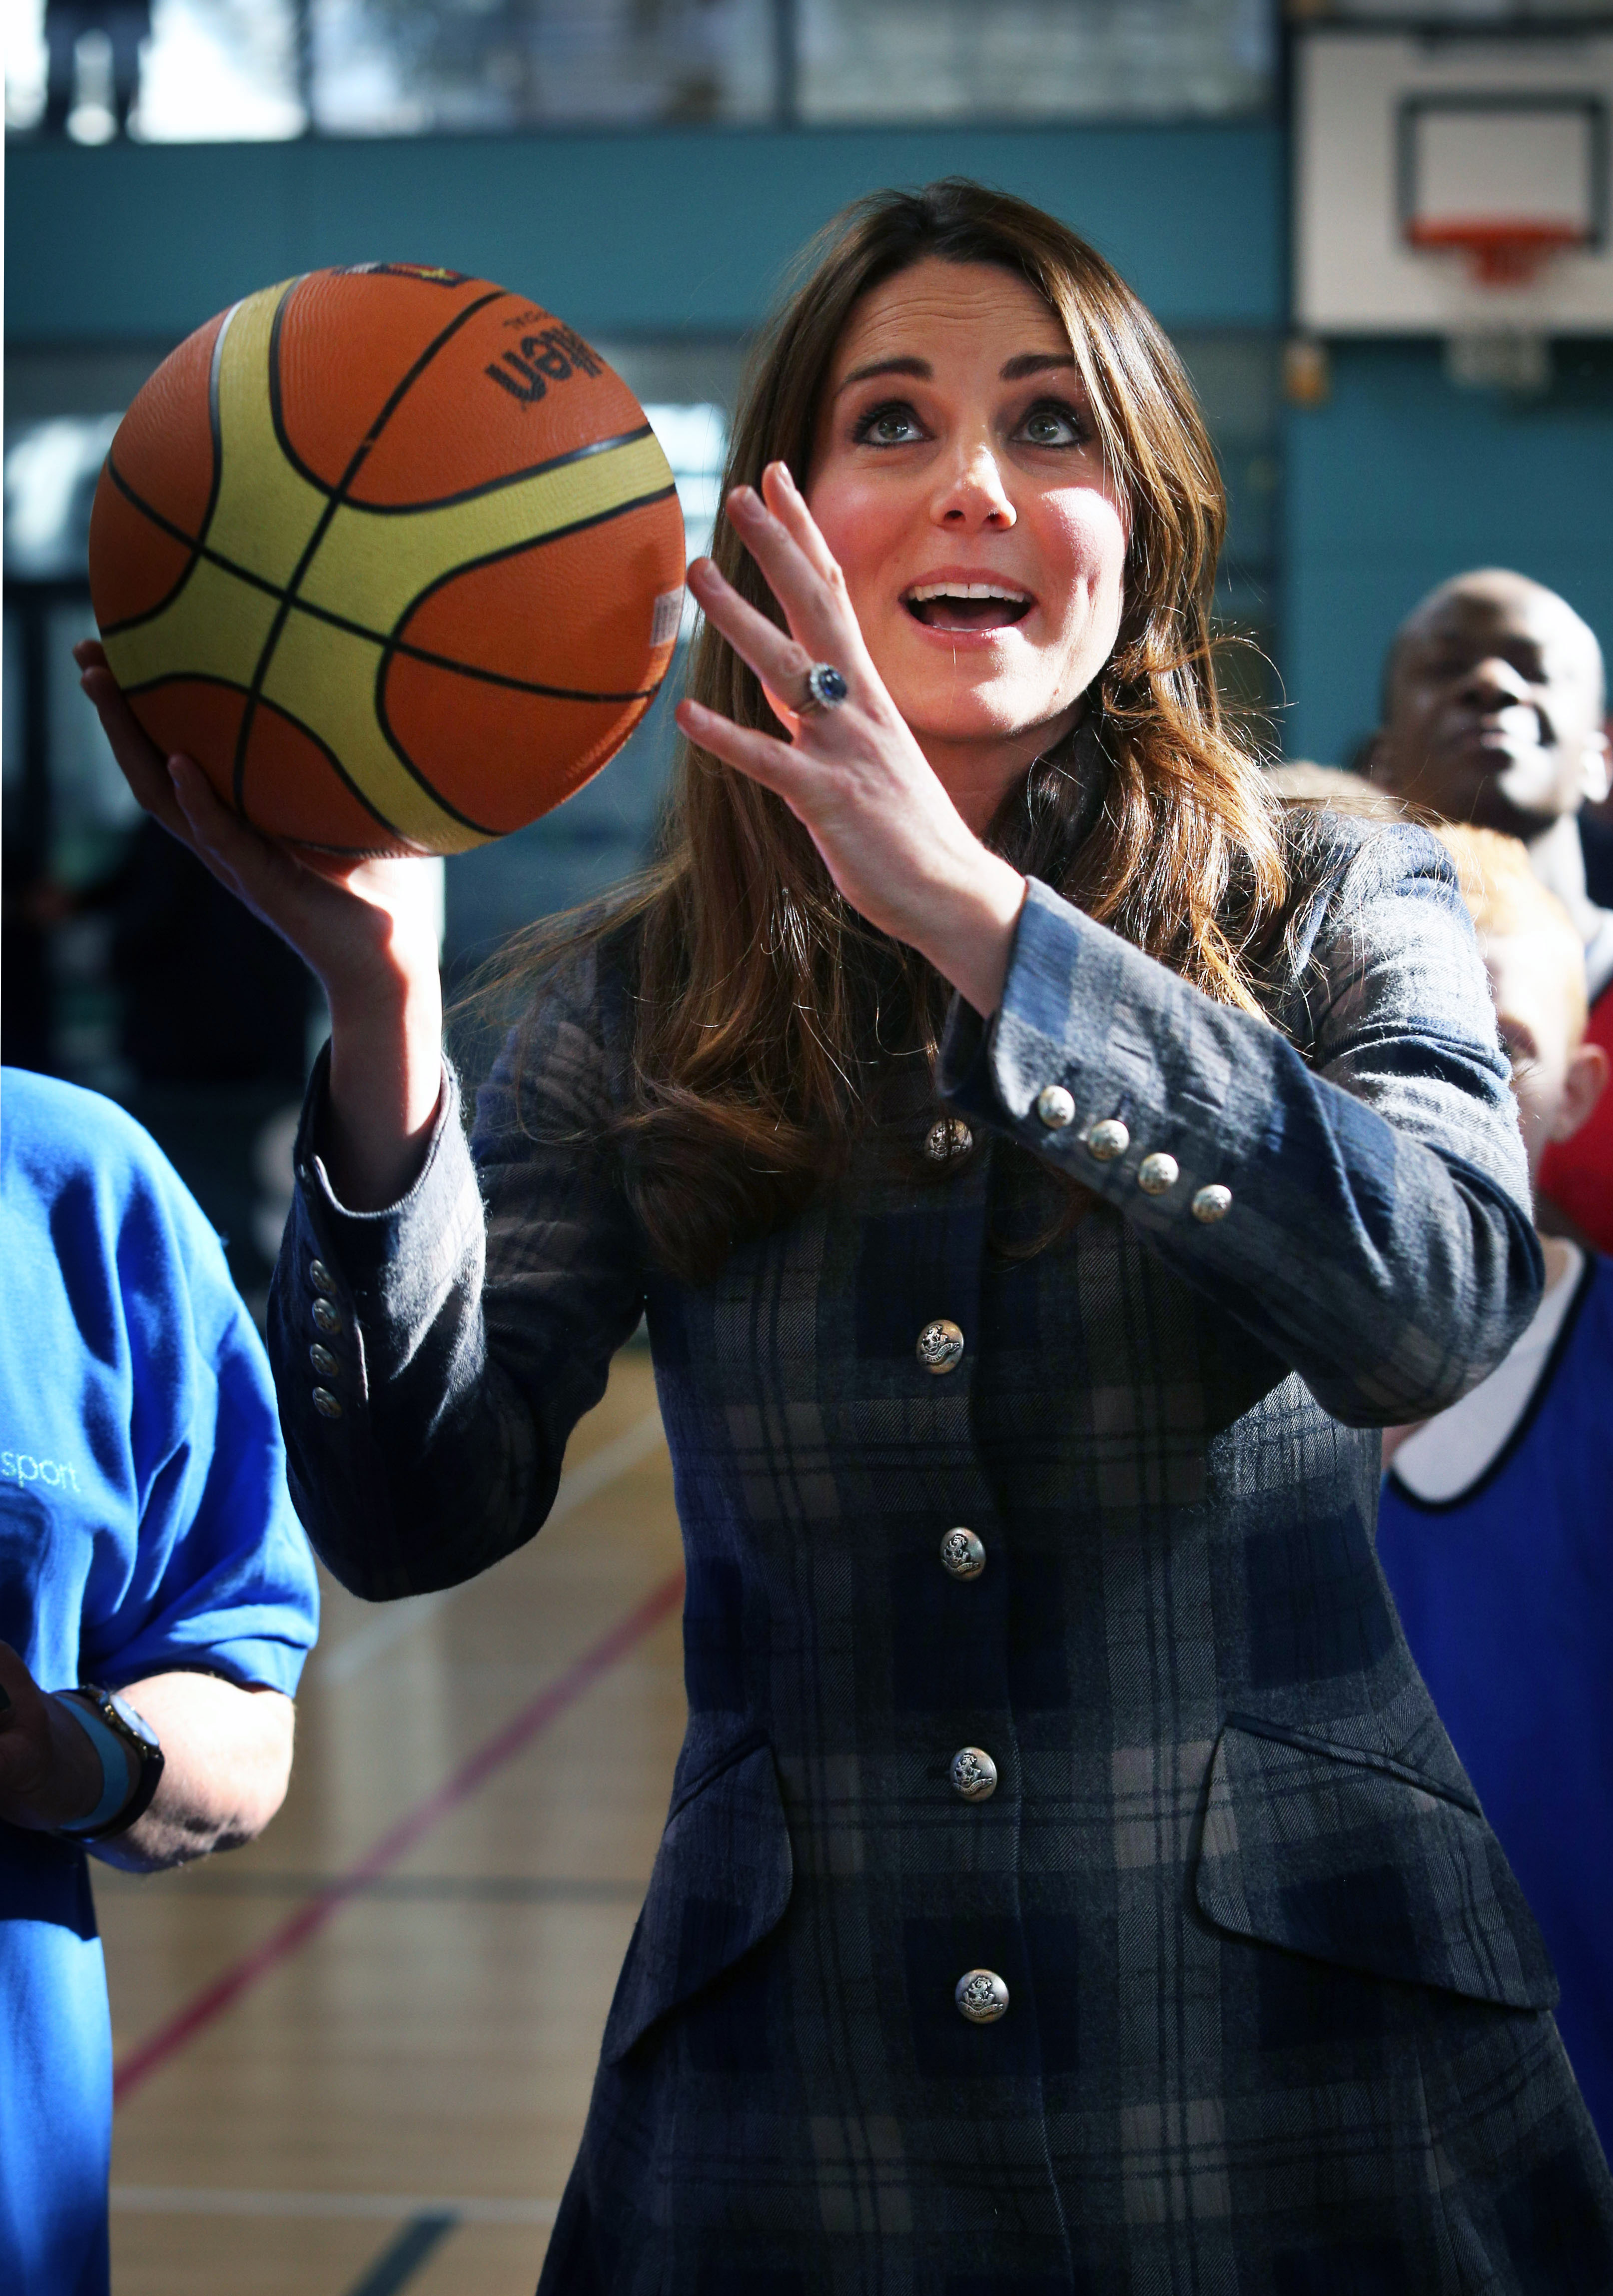 Catherine, the Duchess of Cambridge is shooting a basketball in Glasgow, Scotland, UK. No, I did not speak to the Duchess.